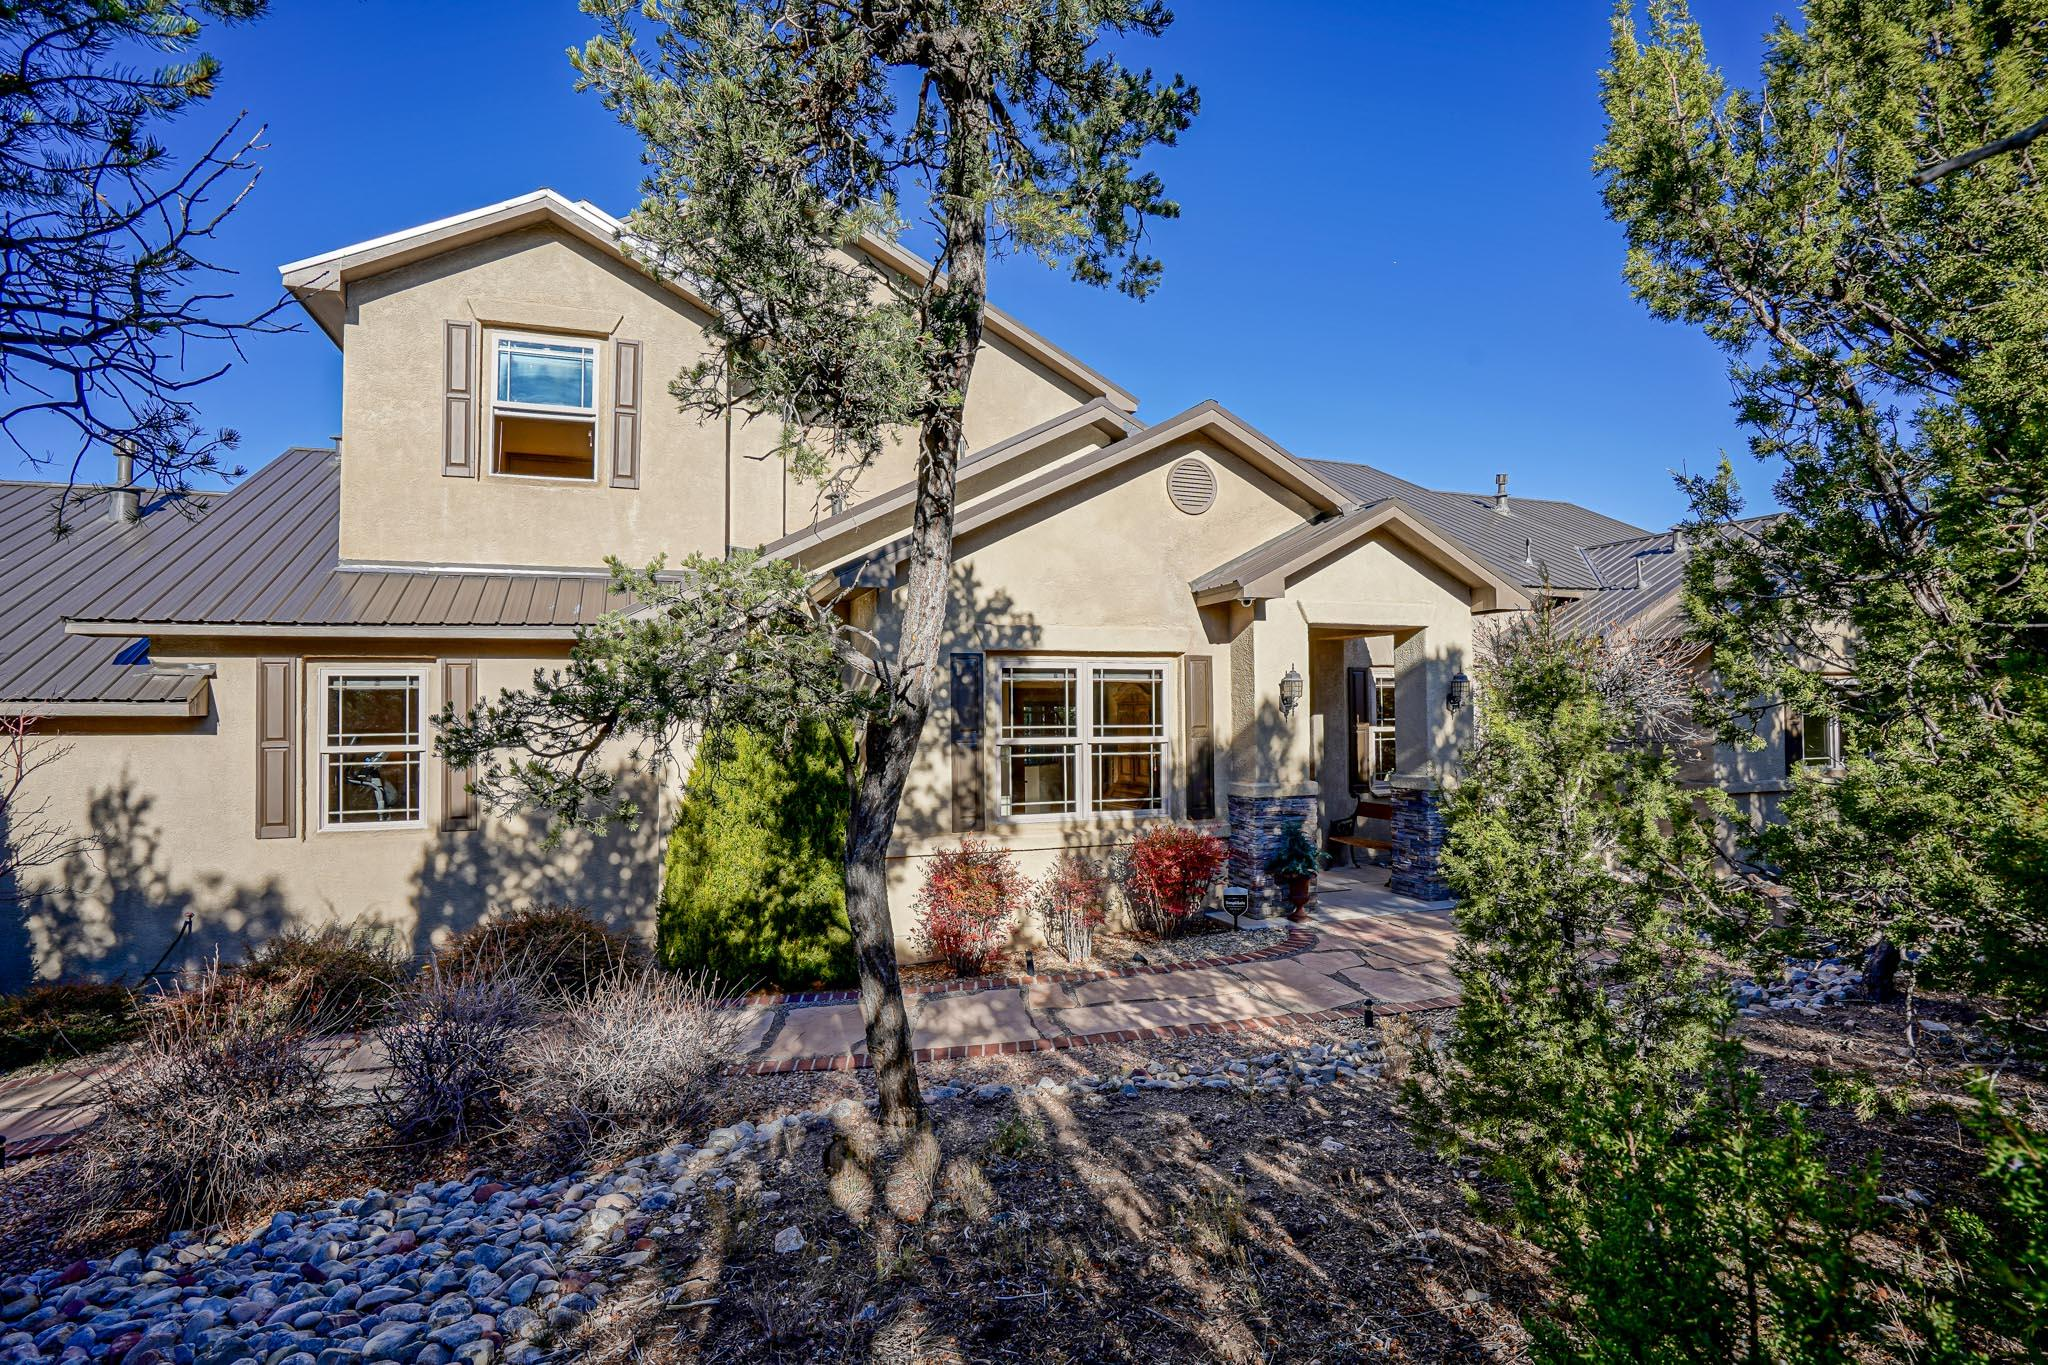 SPECTACULAR Sandia Views! Stunning & Spacious w/Ultimate privacy on 2.2 acres in desirable Tablazon Valley!  Gourmet kitchen w/island, granite tops, cherry cabinetry, SS appliances, large pantry & breakfast nook. Great room w/soaring ceilings, formal dining & stacked-stone fireplace. Entertain & unwind on the expansive covered deck w/outdoor kitchen. Downstairs master retreat boasts luxurious en-suite bath w/custom stone fountain, his & her sinks & closets, walk-in shower w/2 showerheads & soaking tub! Great floorplan w/ 2 bedrooms, full bath, loft/2nd living room & private deck upstairs.  Two additional bedrooms (one en-suite) downstairs, great for multi-generational/functional living. Pristine oversized 3-car garage & new roof. Enjoy the wildlife & nearby trails! Just minutes to ABQ!